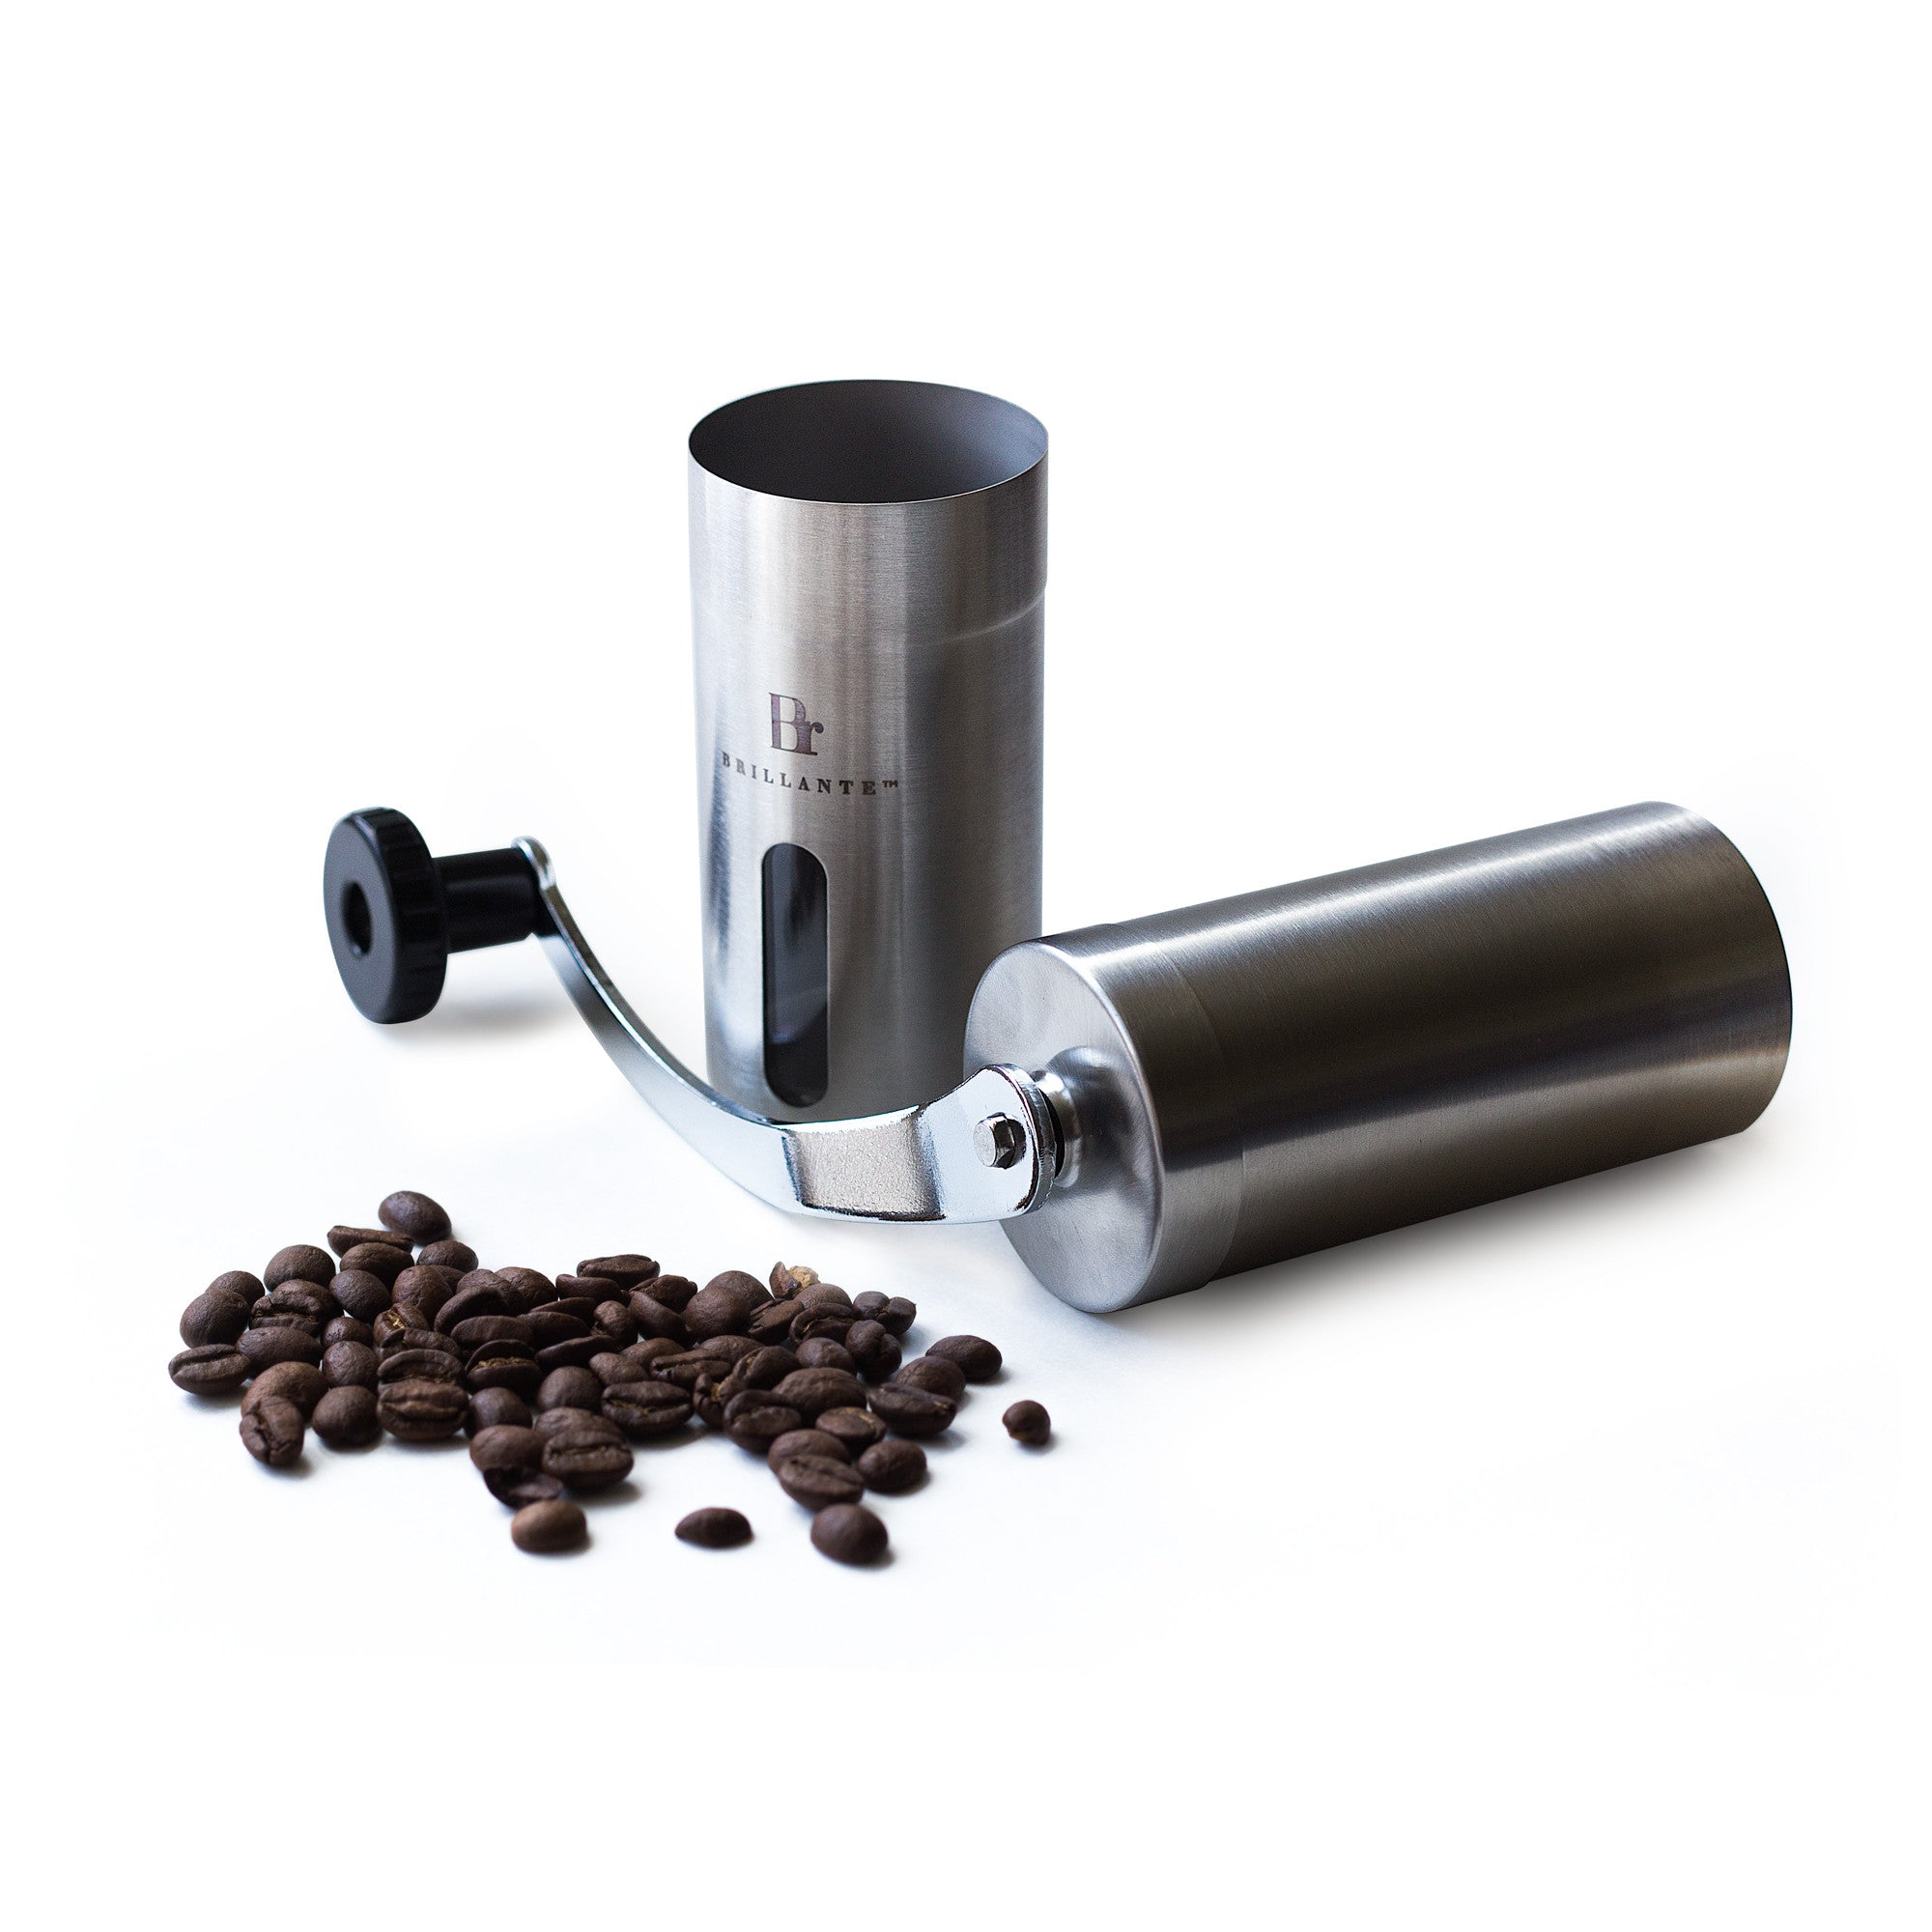 Brillante™ BR-MCG-SS1 Manual Burr Coffee Grinder